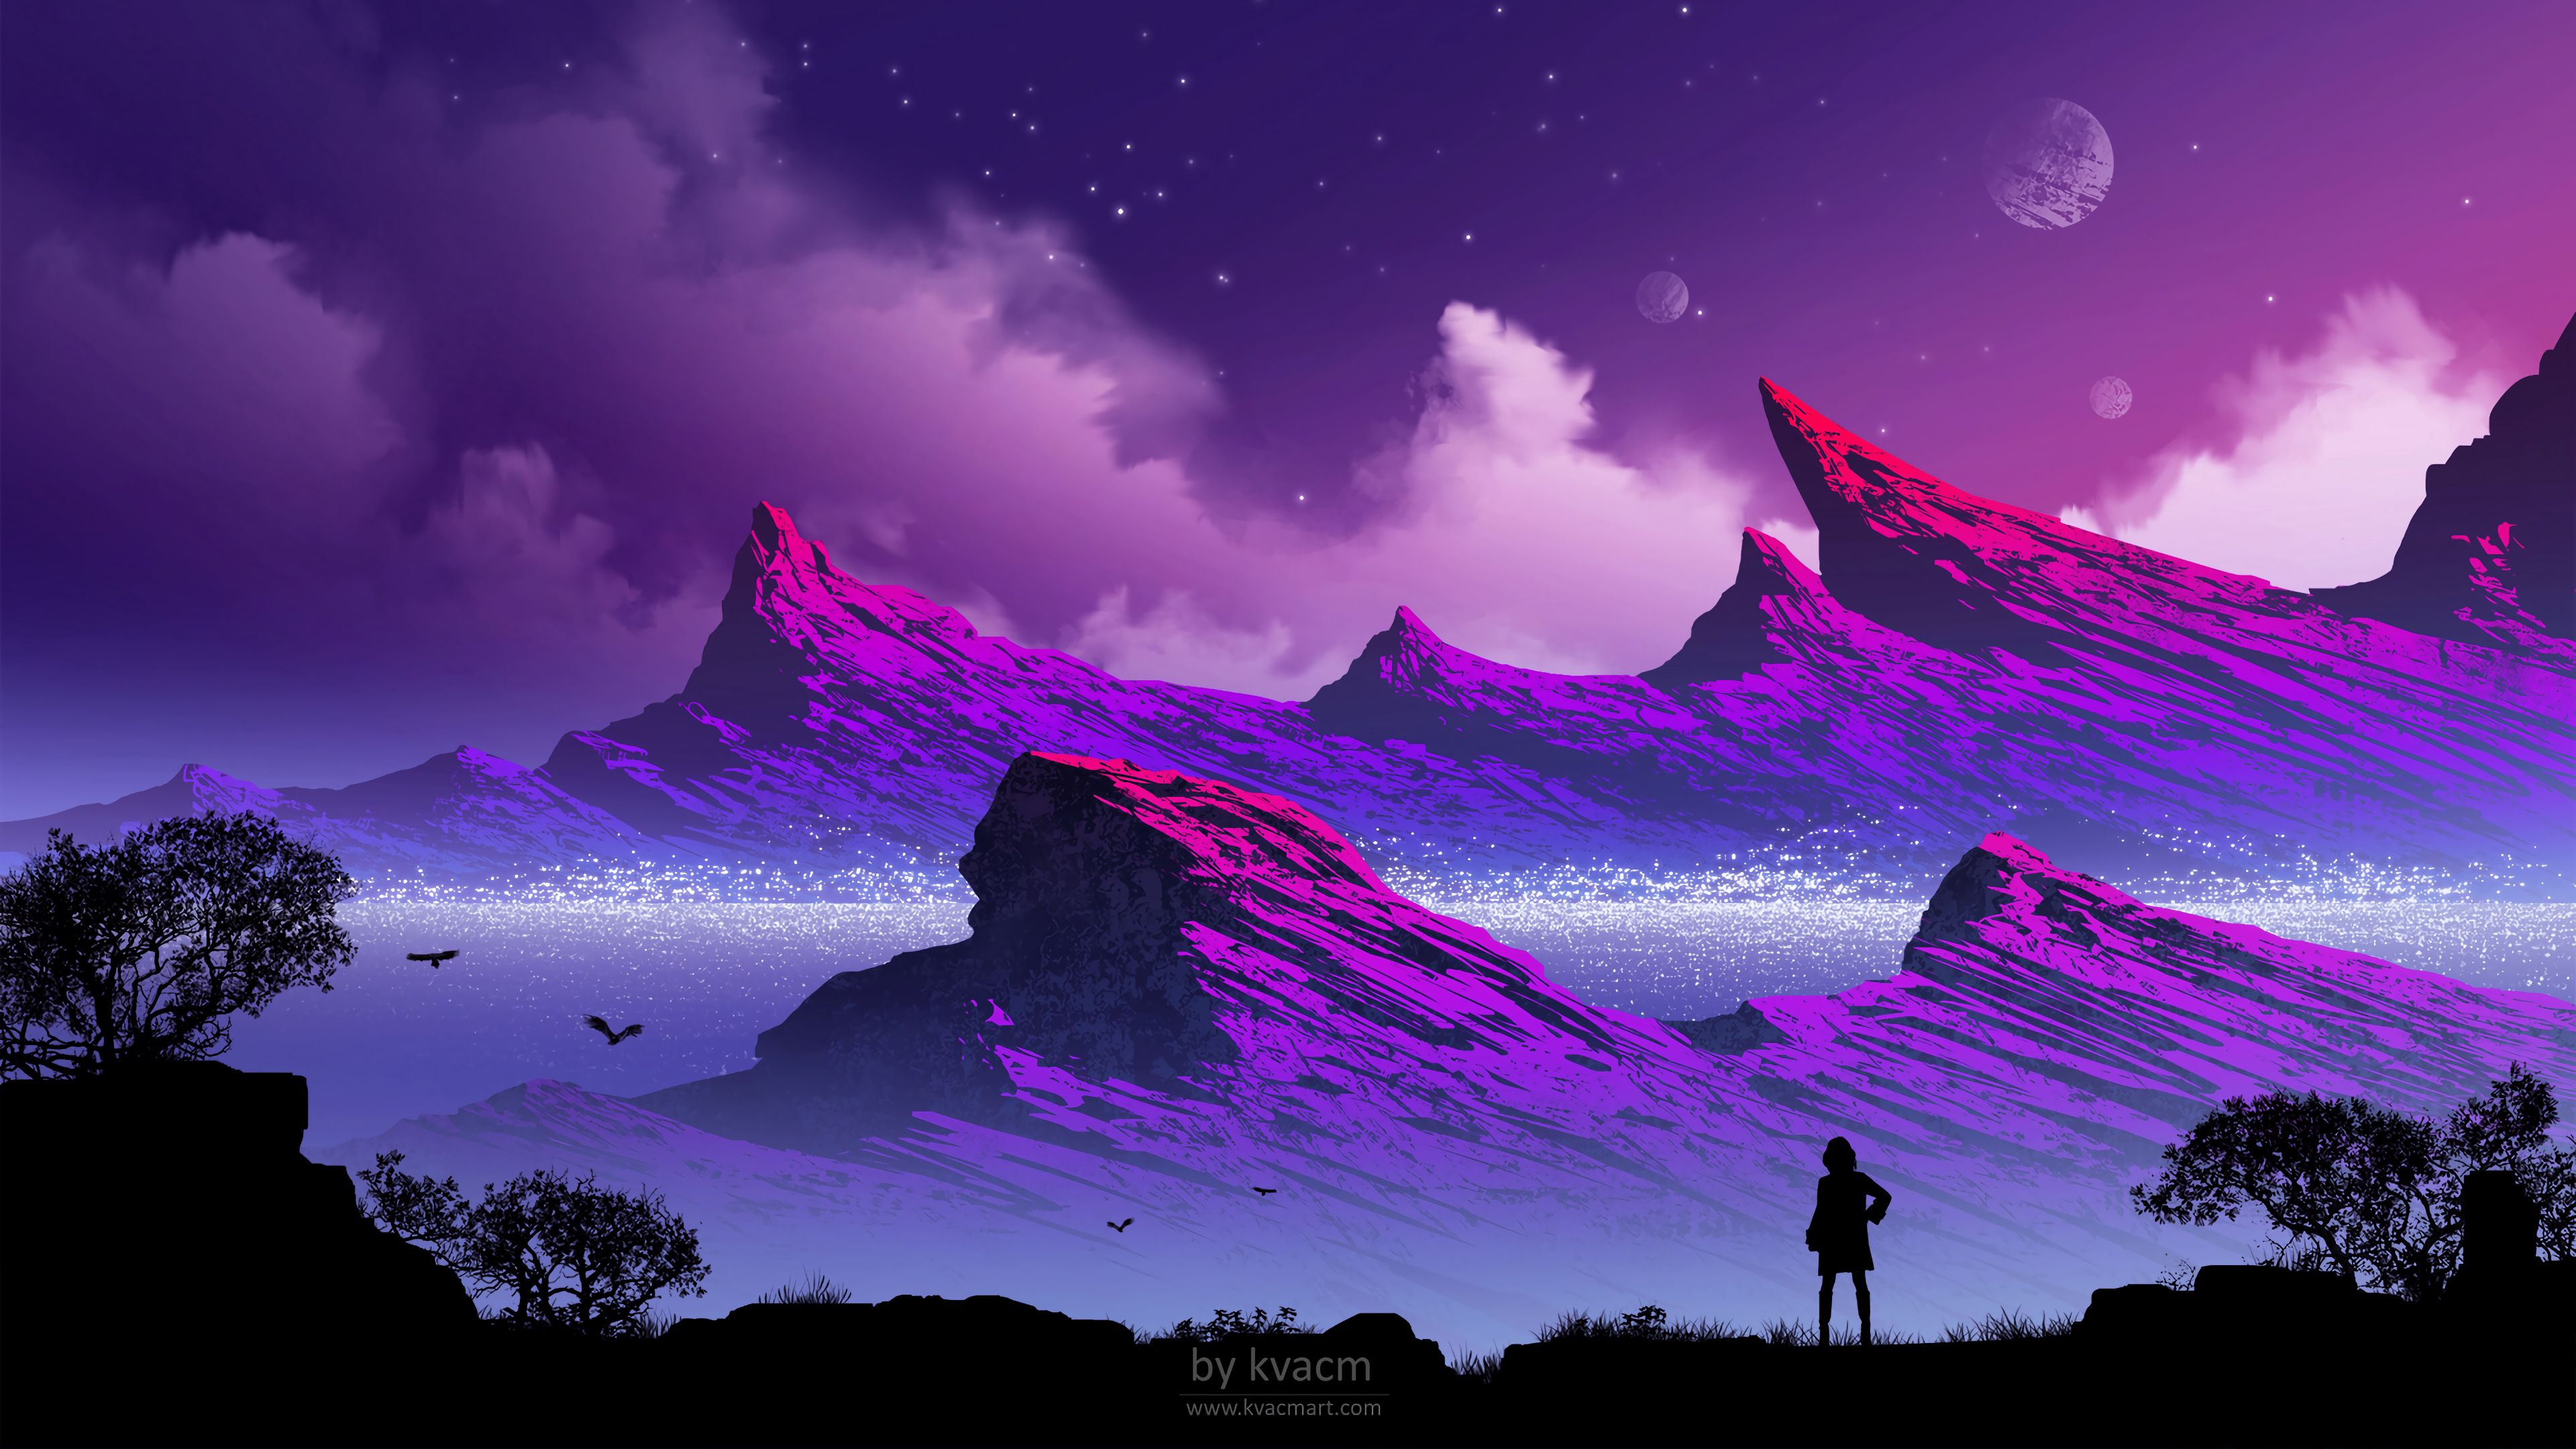 147680 download wallpaper Silhouette, Gore, Mountains, Clouds, Art, Fog, Loneliness, Alone, Lonely screensavers and pictures for free